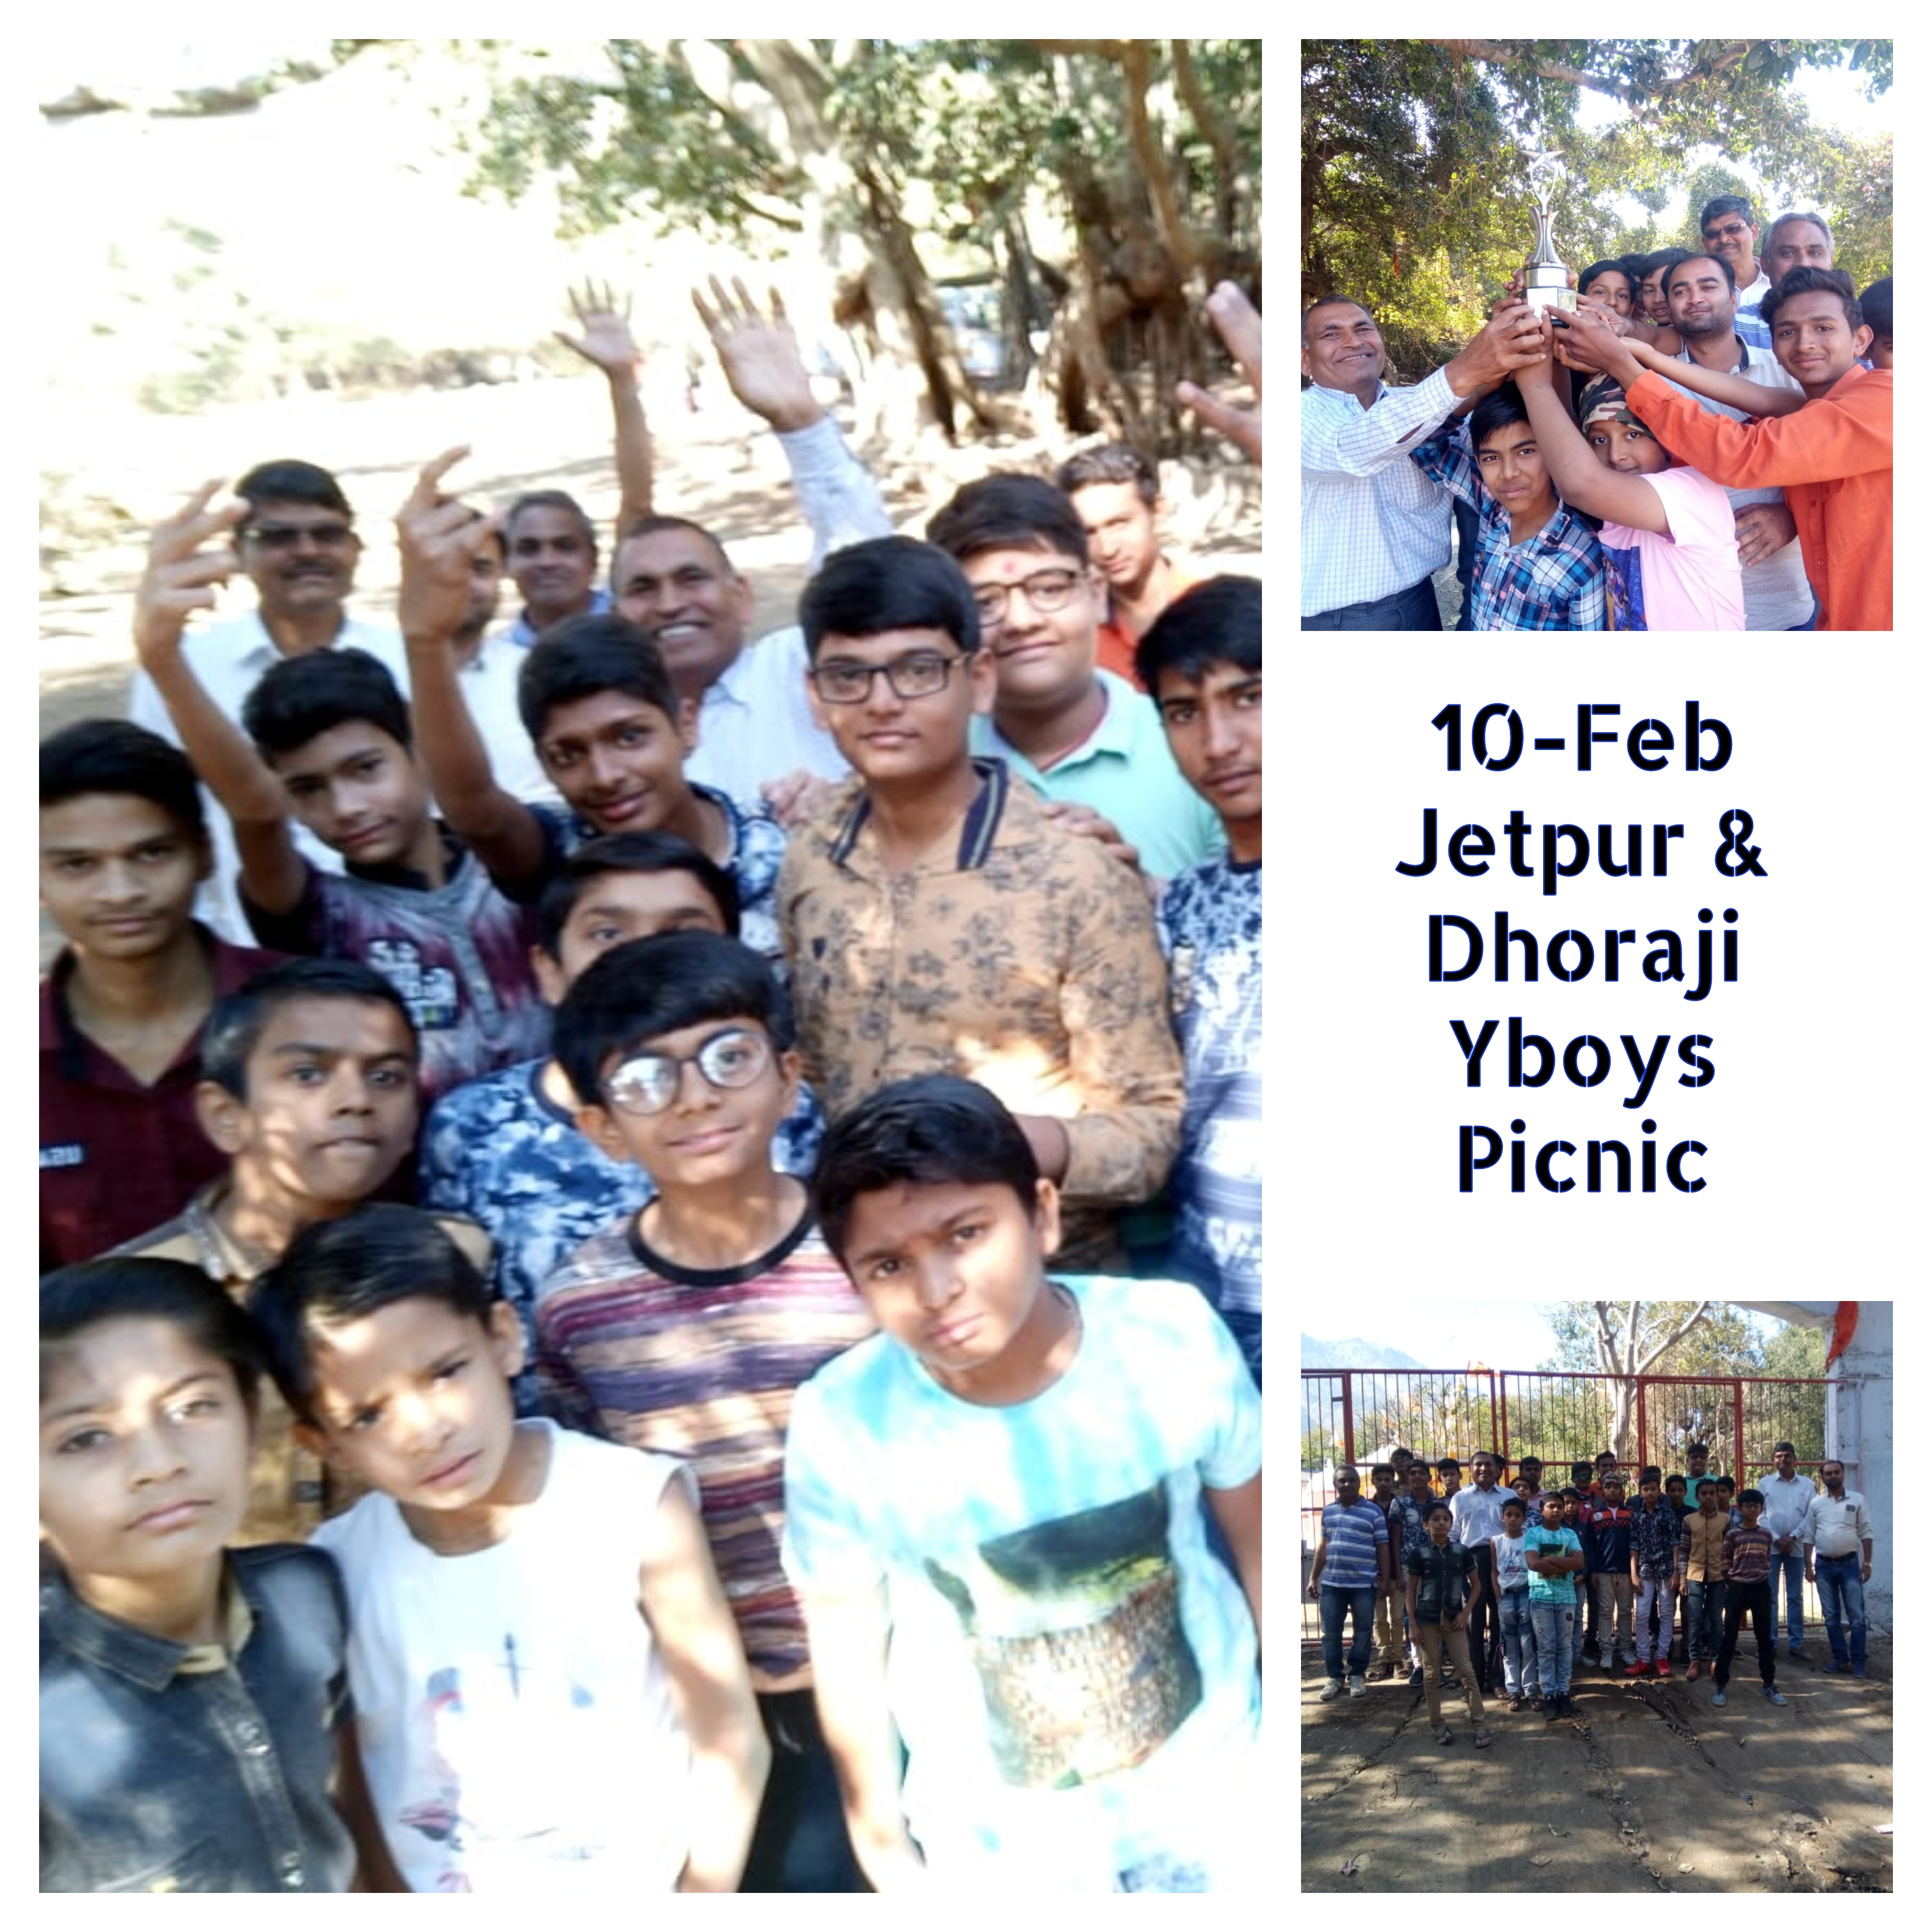 10Feb Jetpurplusdhoraji Picnic Collage